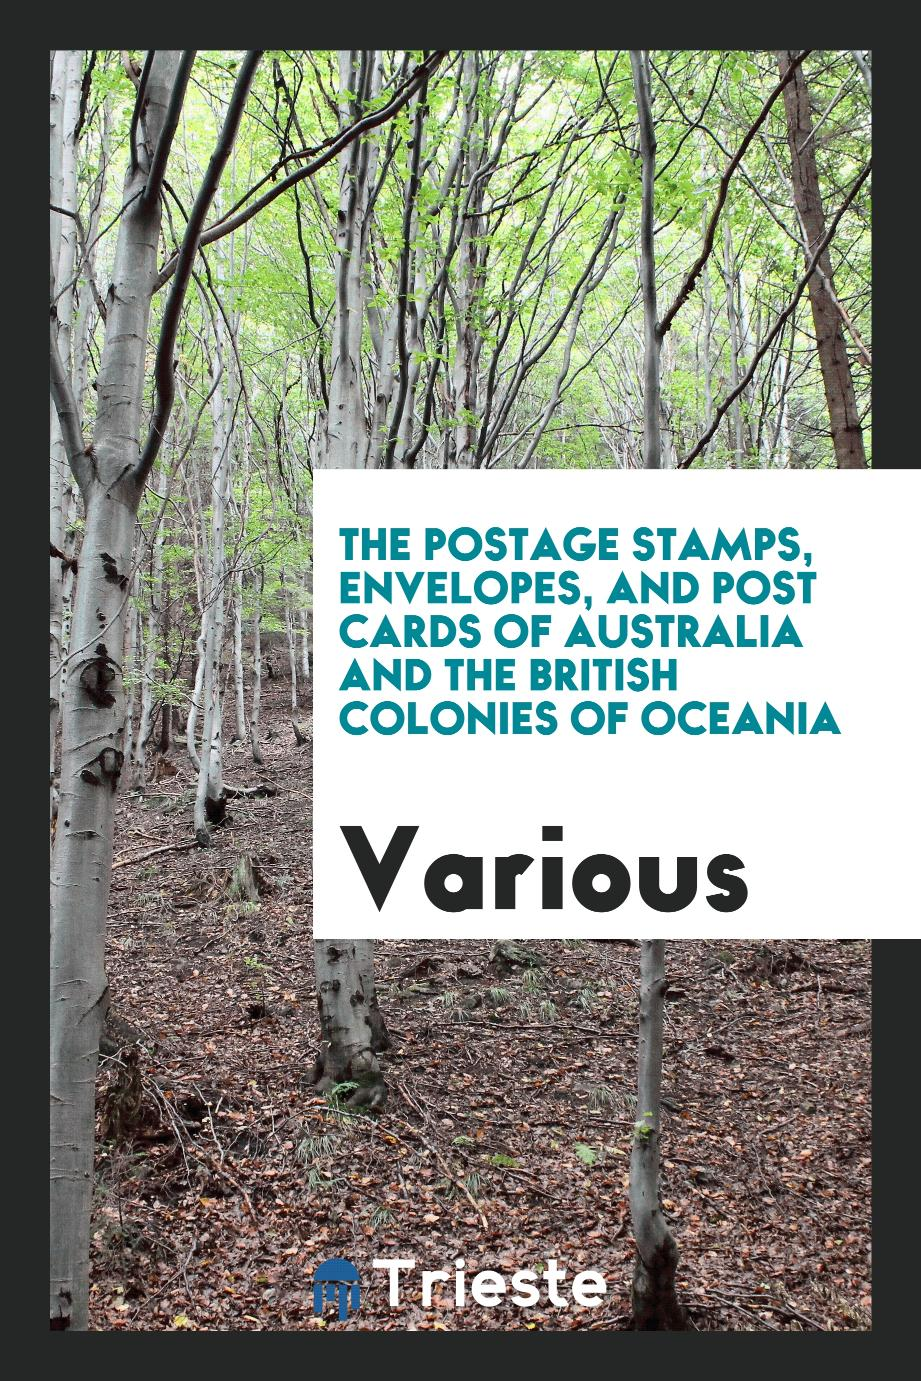 The postage stamps, envelopes, and post cards of Australia and the British Colonies of Oceania